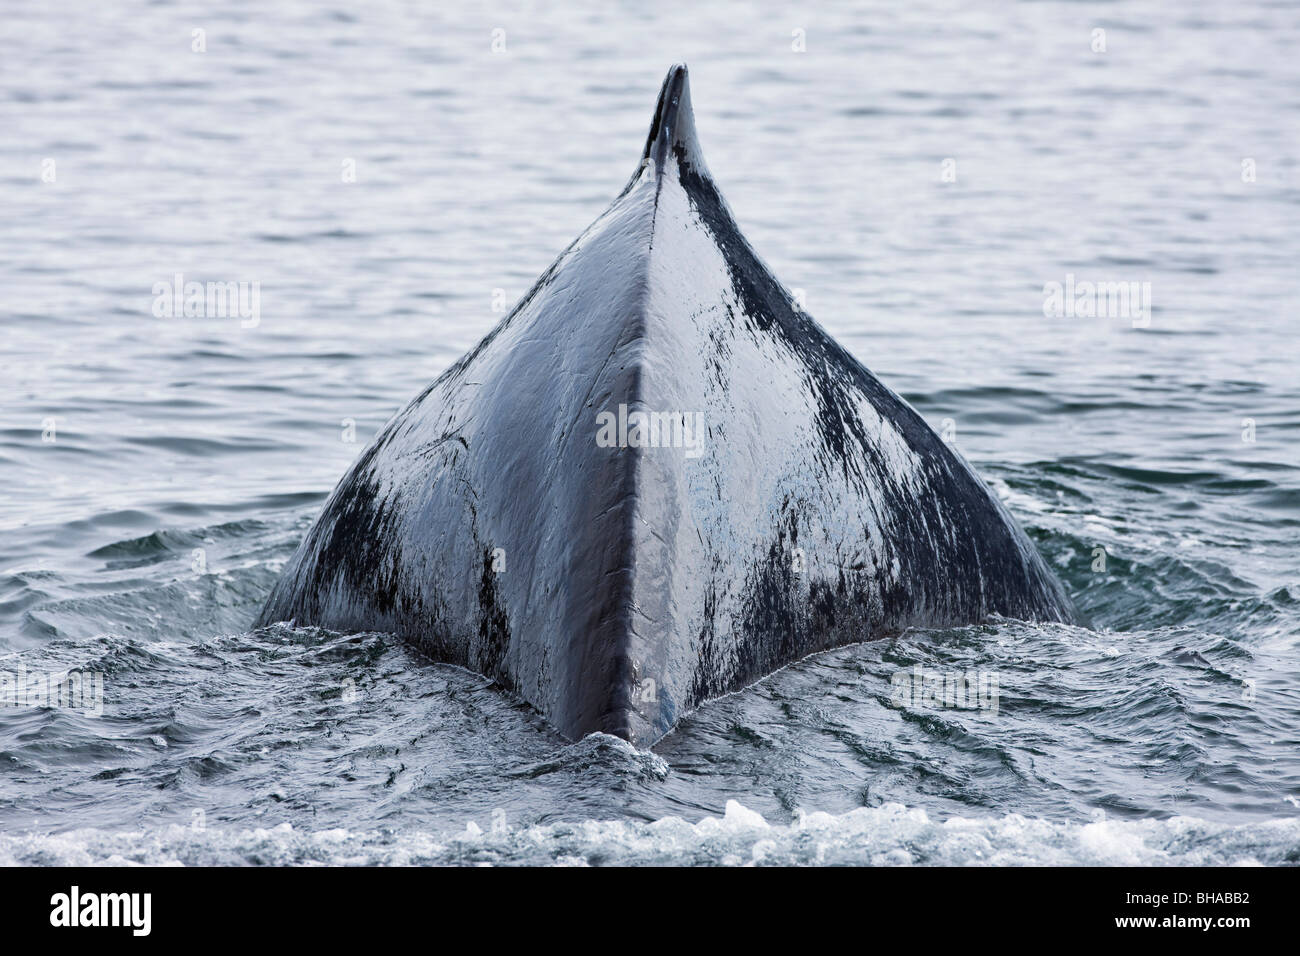 The humped back and fin of a Humpback whale as it dives to feed in Seymour Canal in the Inside Passage of Southeast - Stock Image